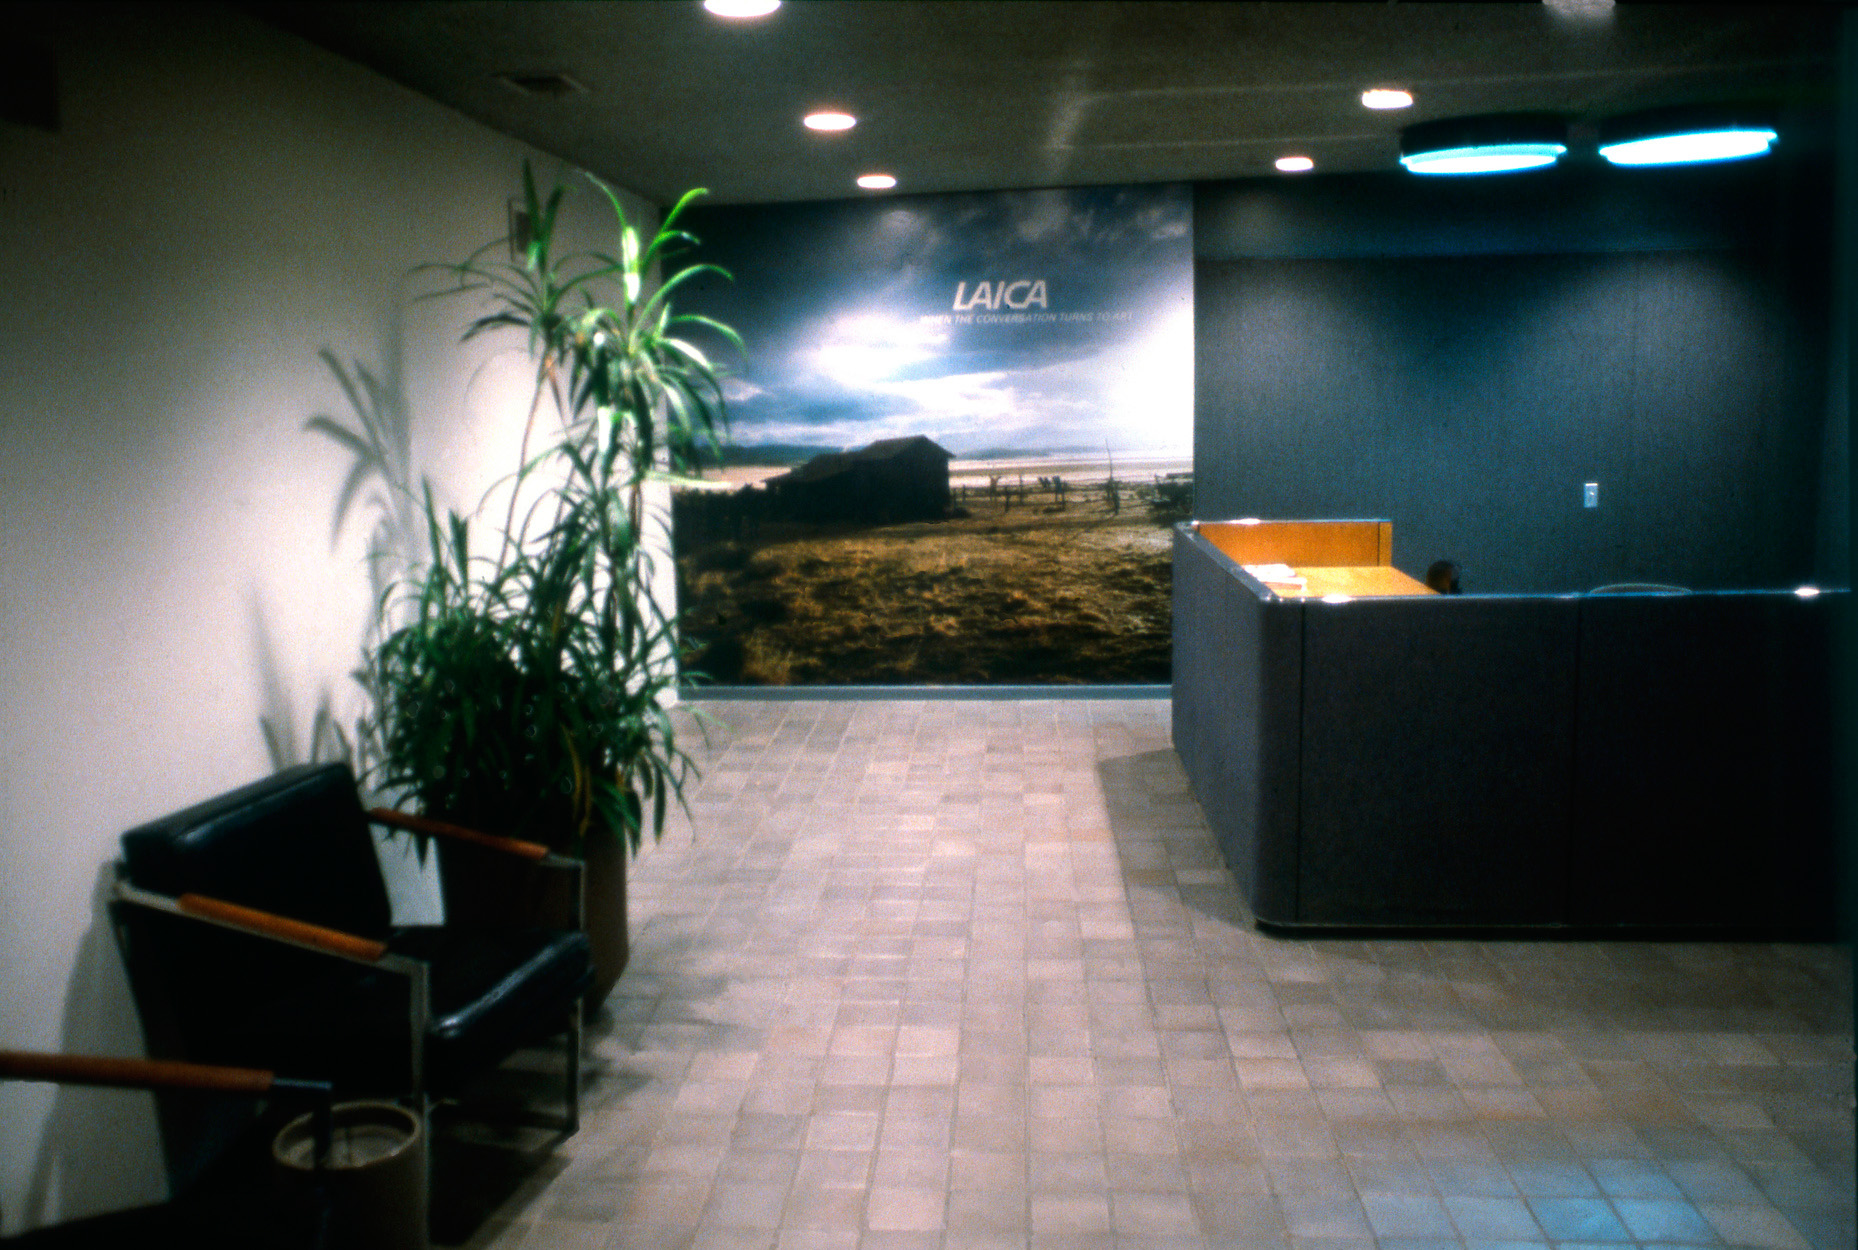 John Knight, <em>LAICA: When the Conversation Turns to Art</em>, a work in situ at LAICA Gallery, 1984. Installation view. Courtesy of the artist.